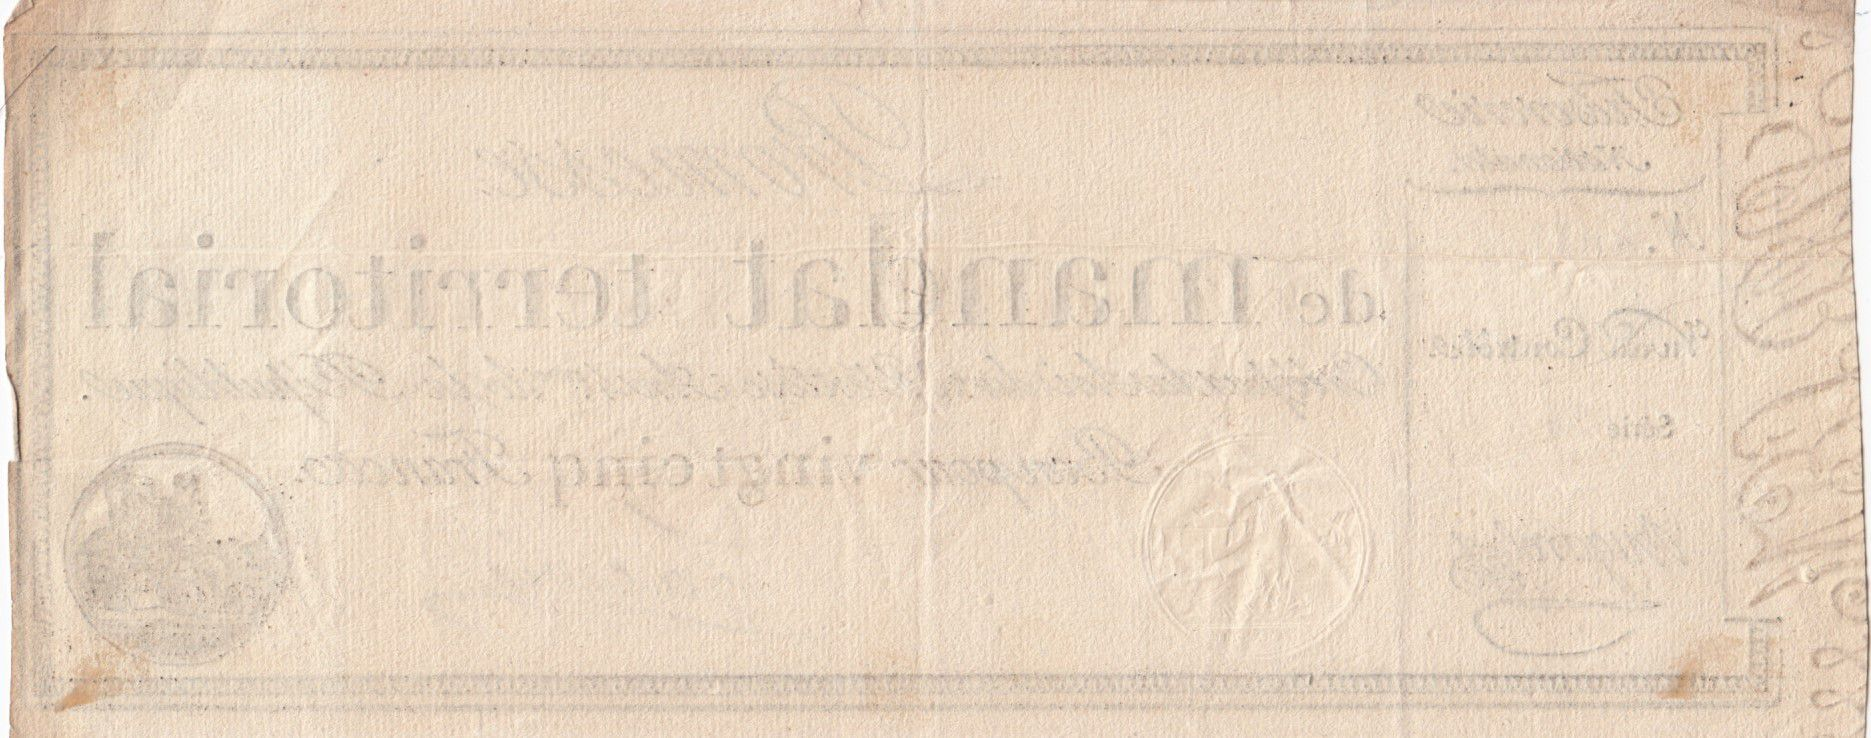 France 25 Francs with serial - 28 Ventose An IV (18.03.1796) - VF